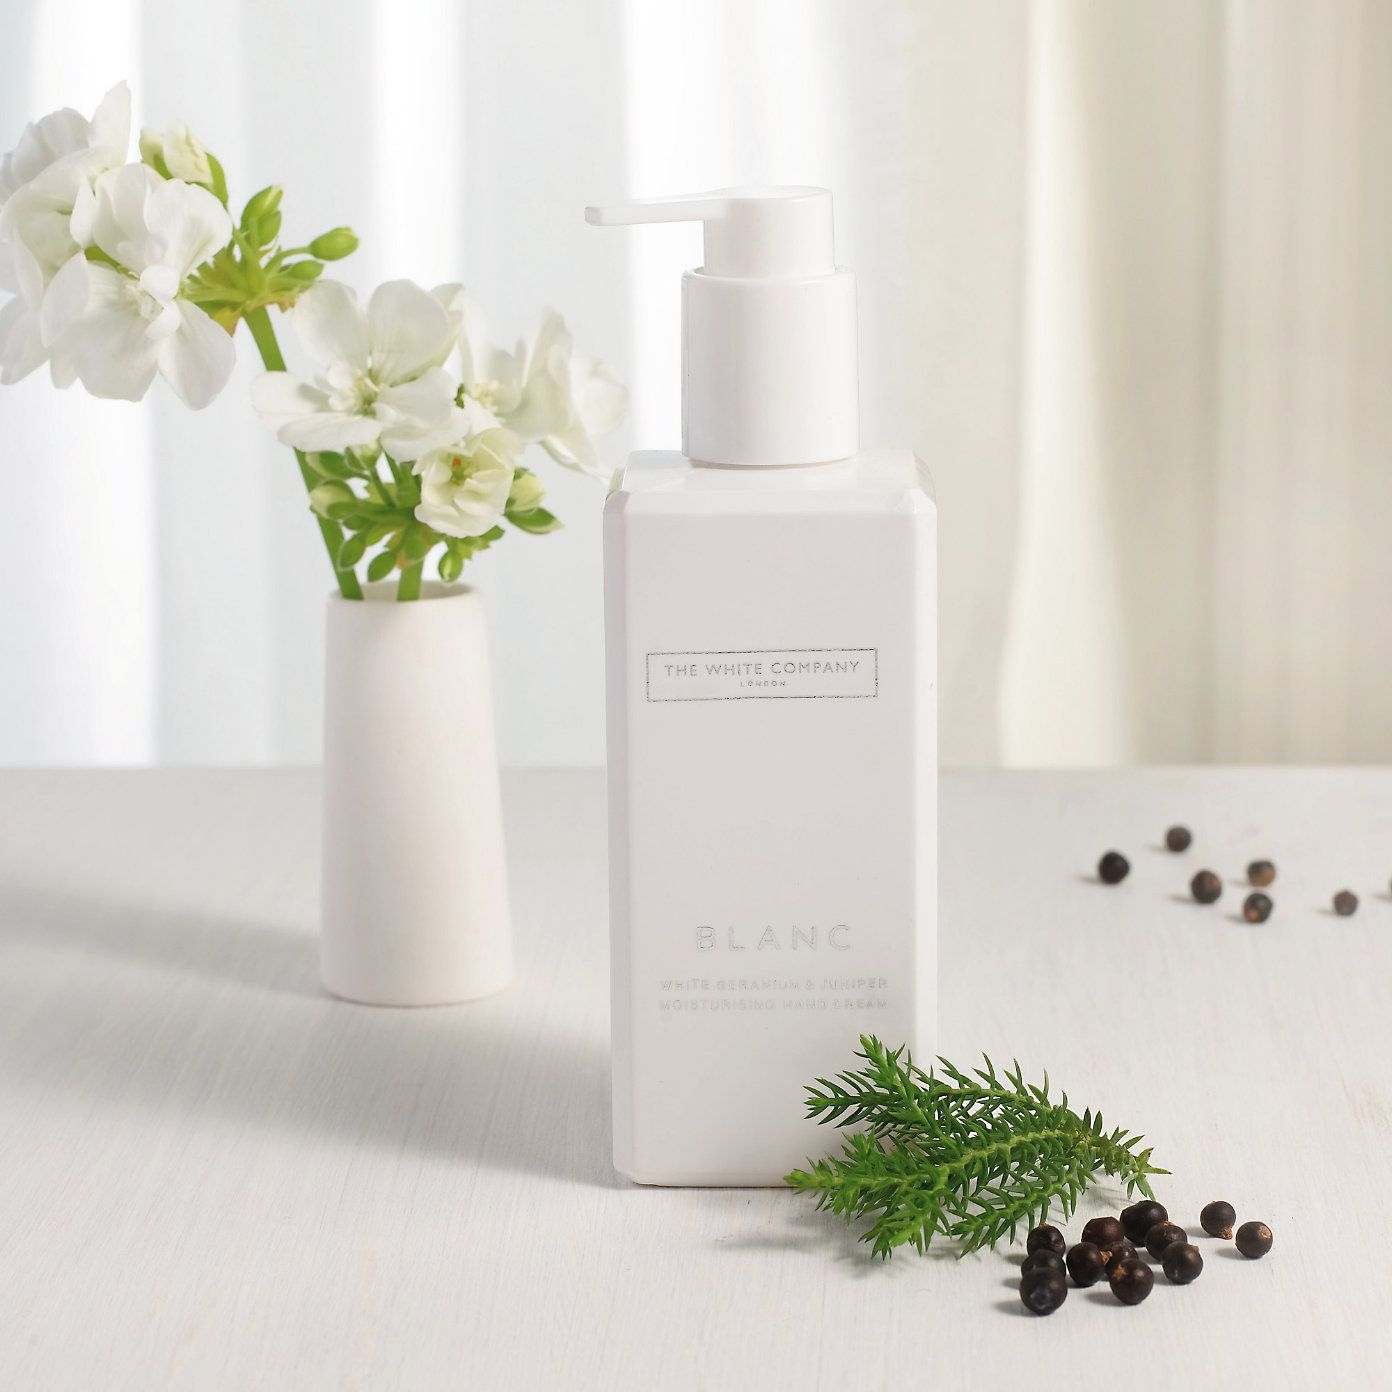 Buy Candles & Fragrance > Bath & Body > Blanc Hand & Nail Cream from The White Company